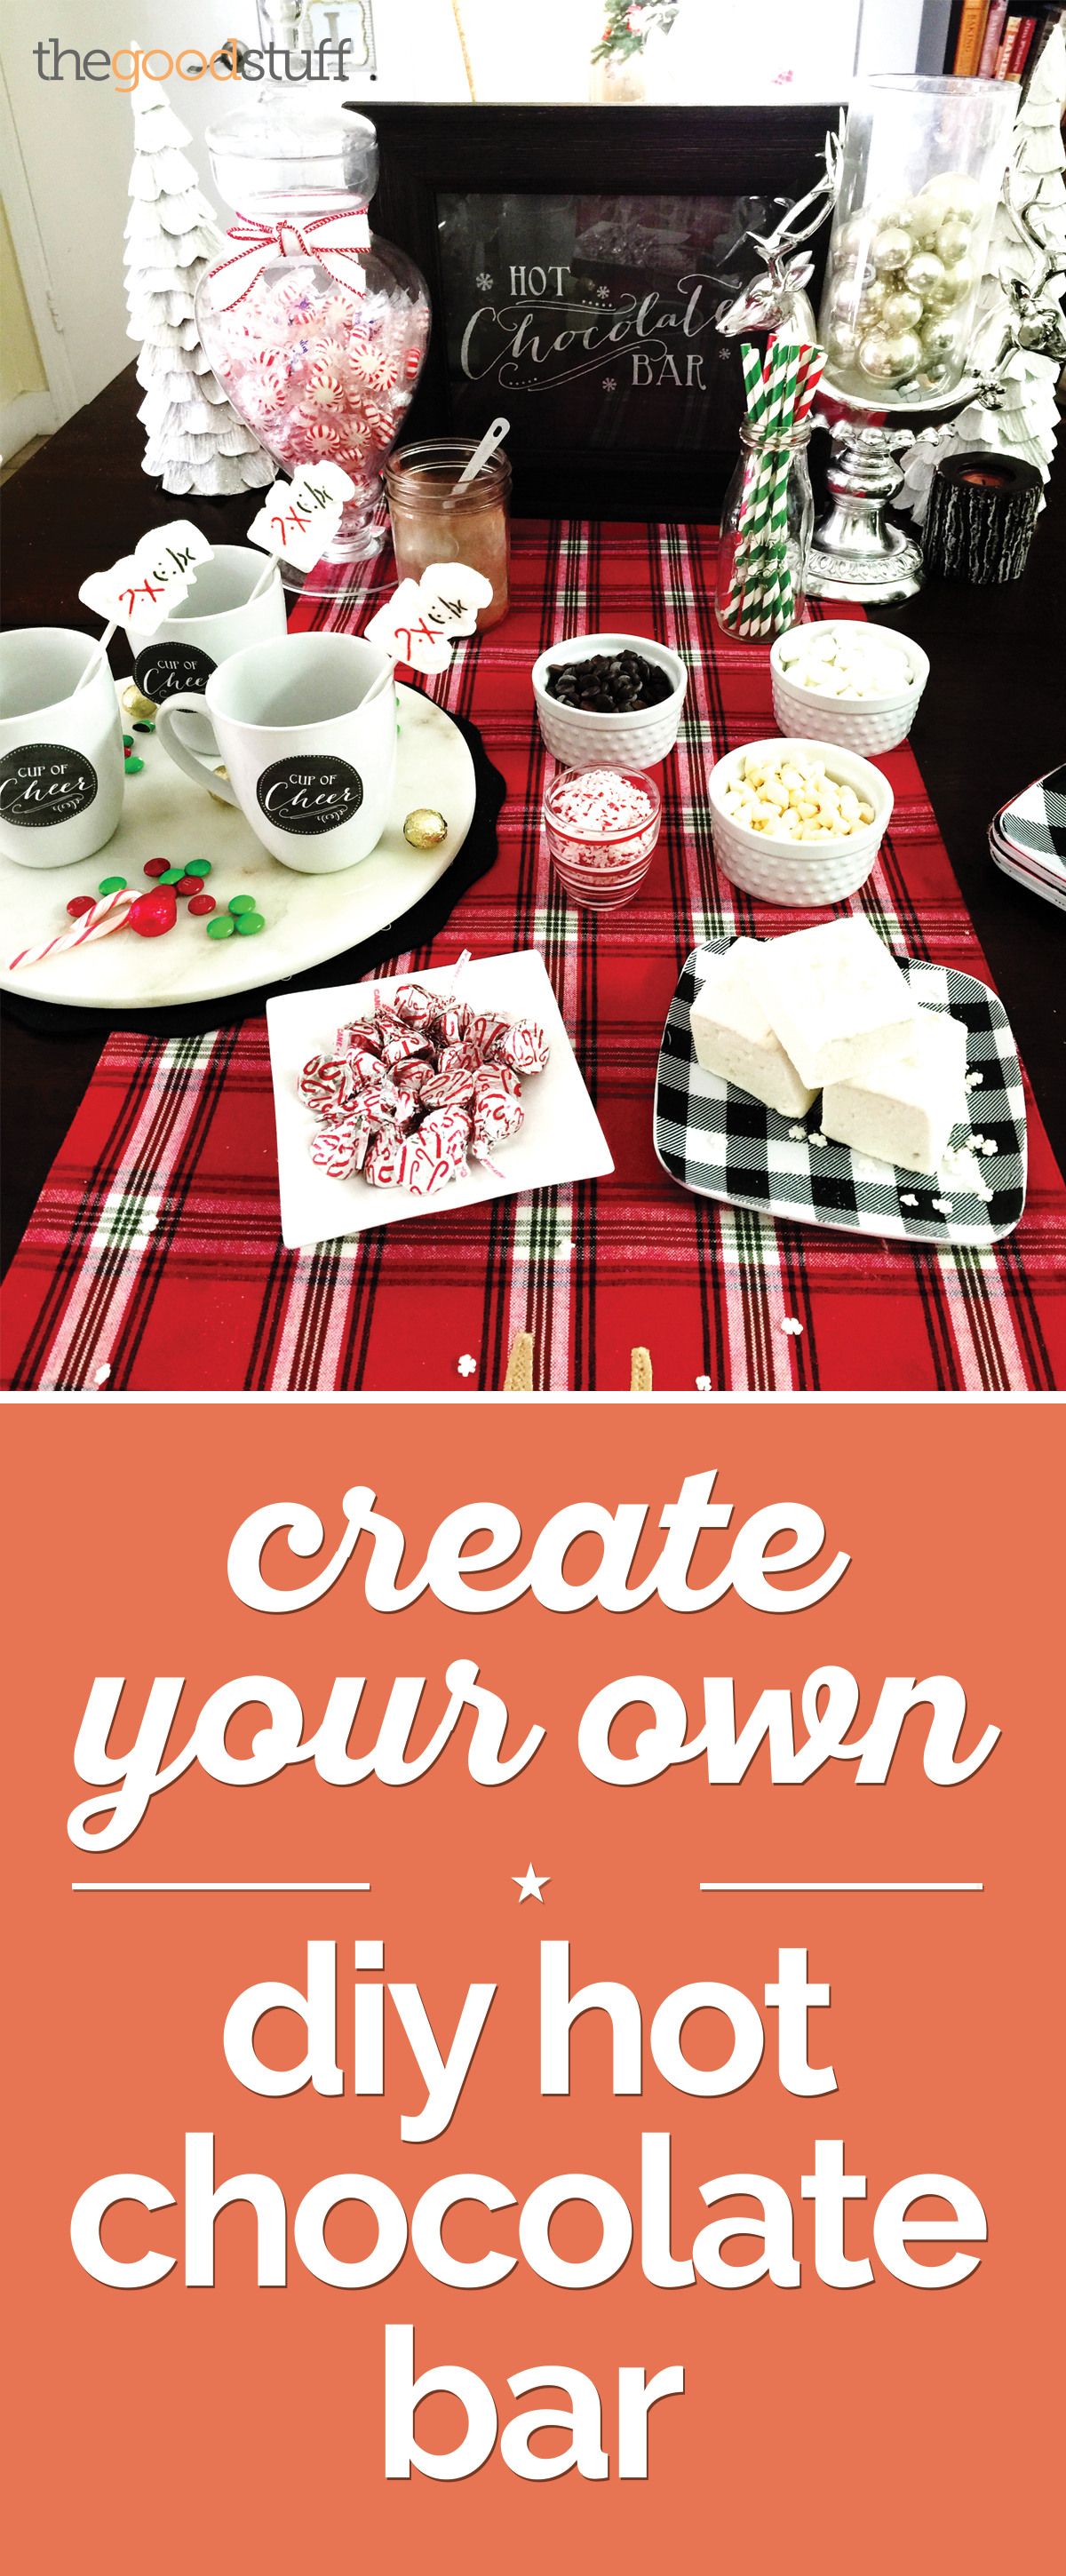 Create Your Own DIY Hot Chocolate Bar | thegoodstuff